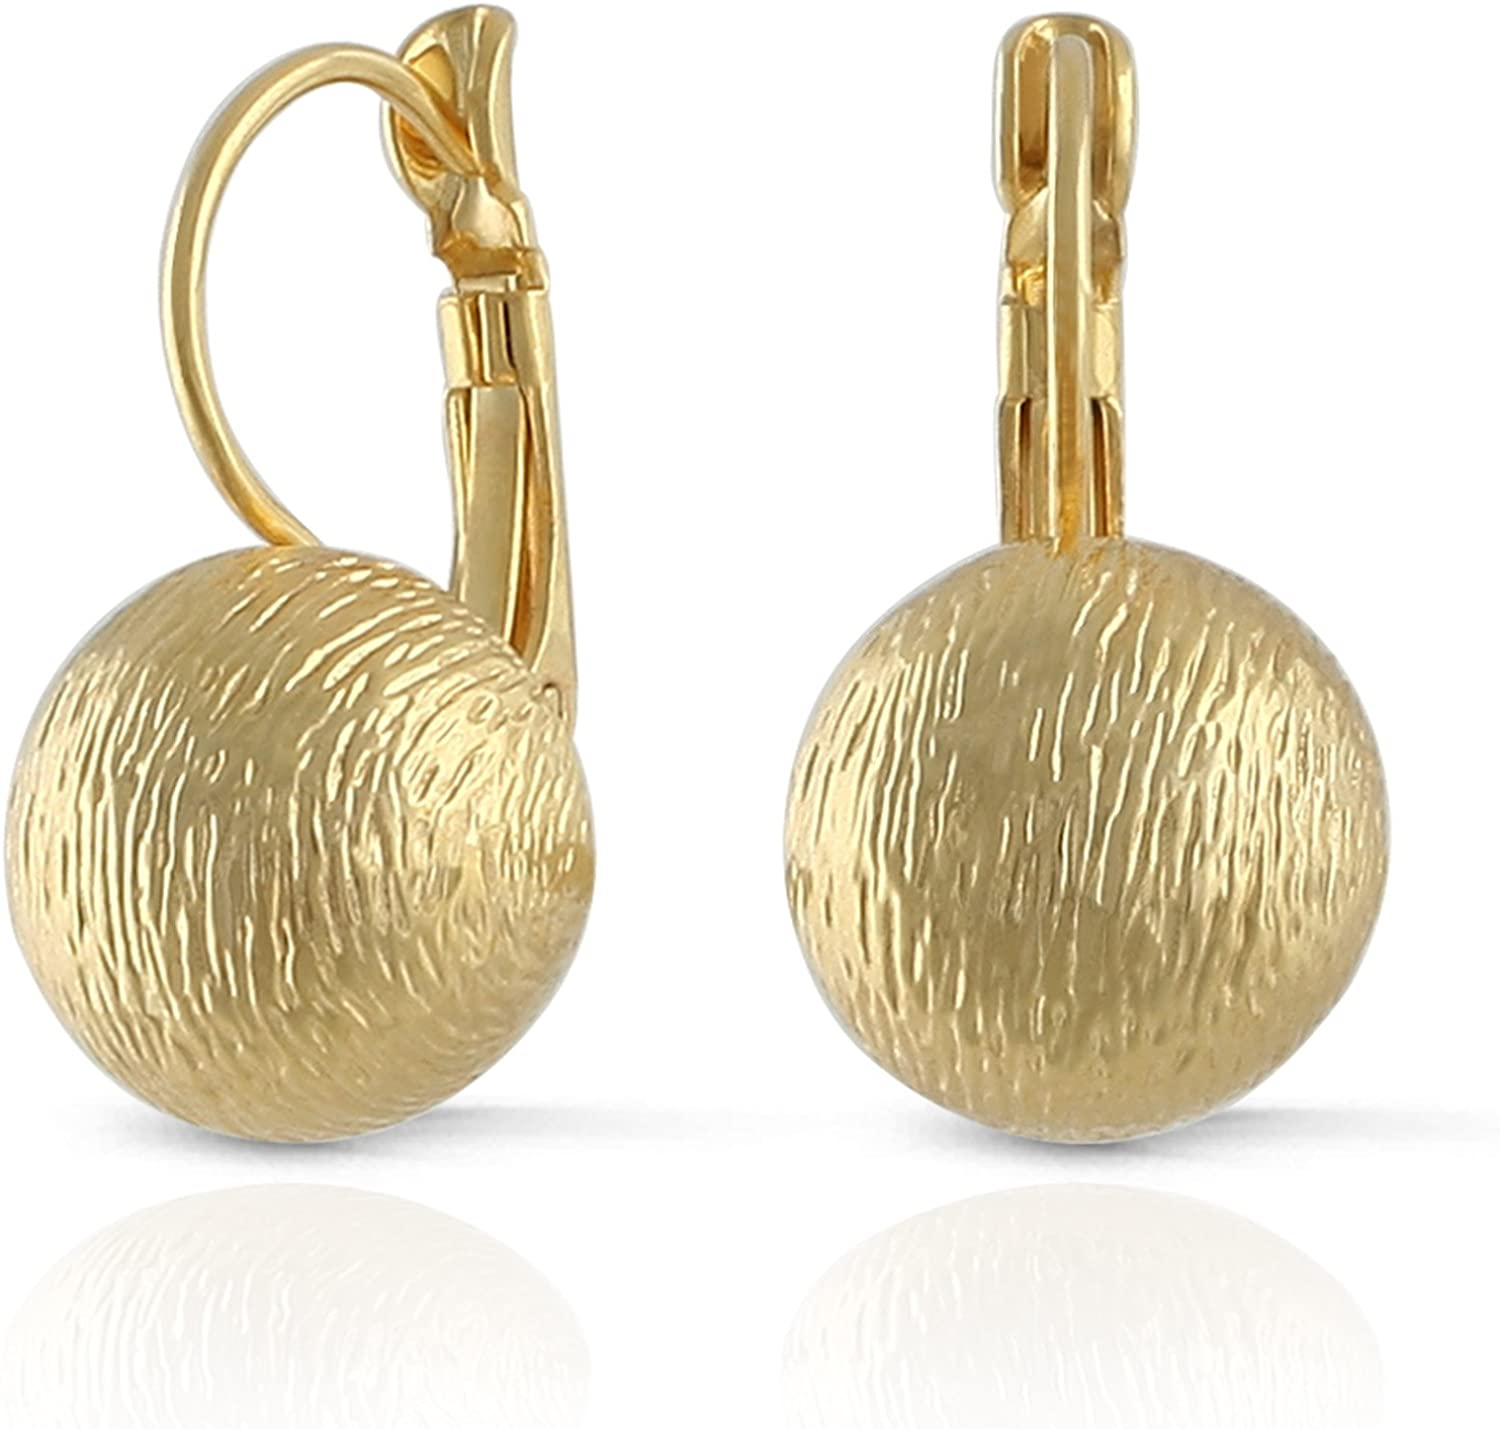 JanKuo Jewelry Brushed Satin Matte Gold Plated Ball Leverback Earrings